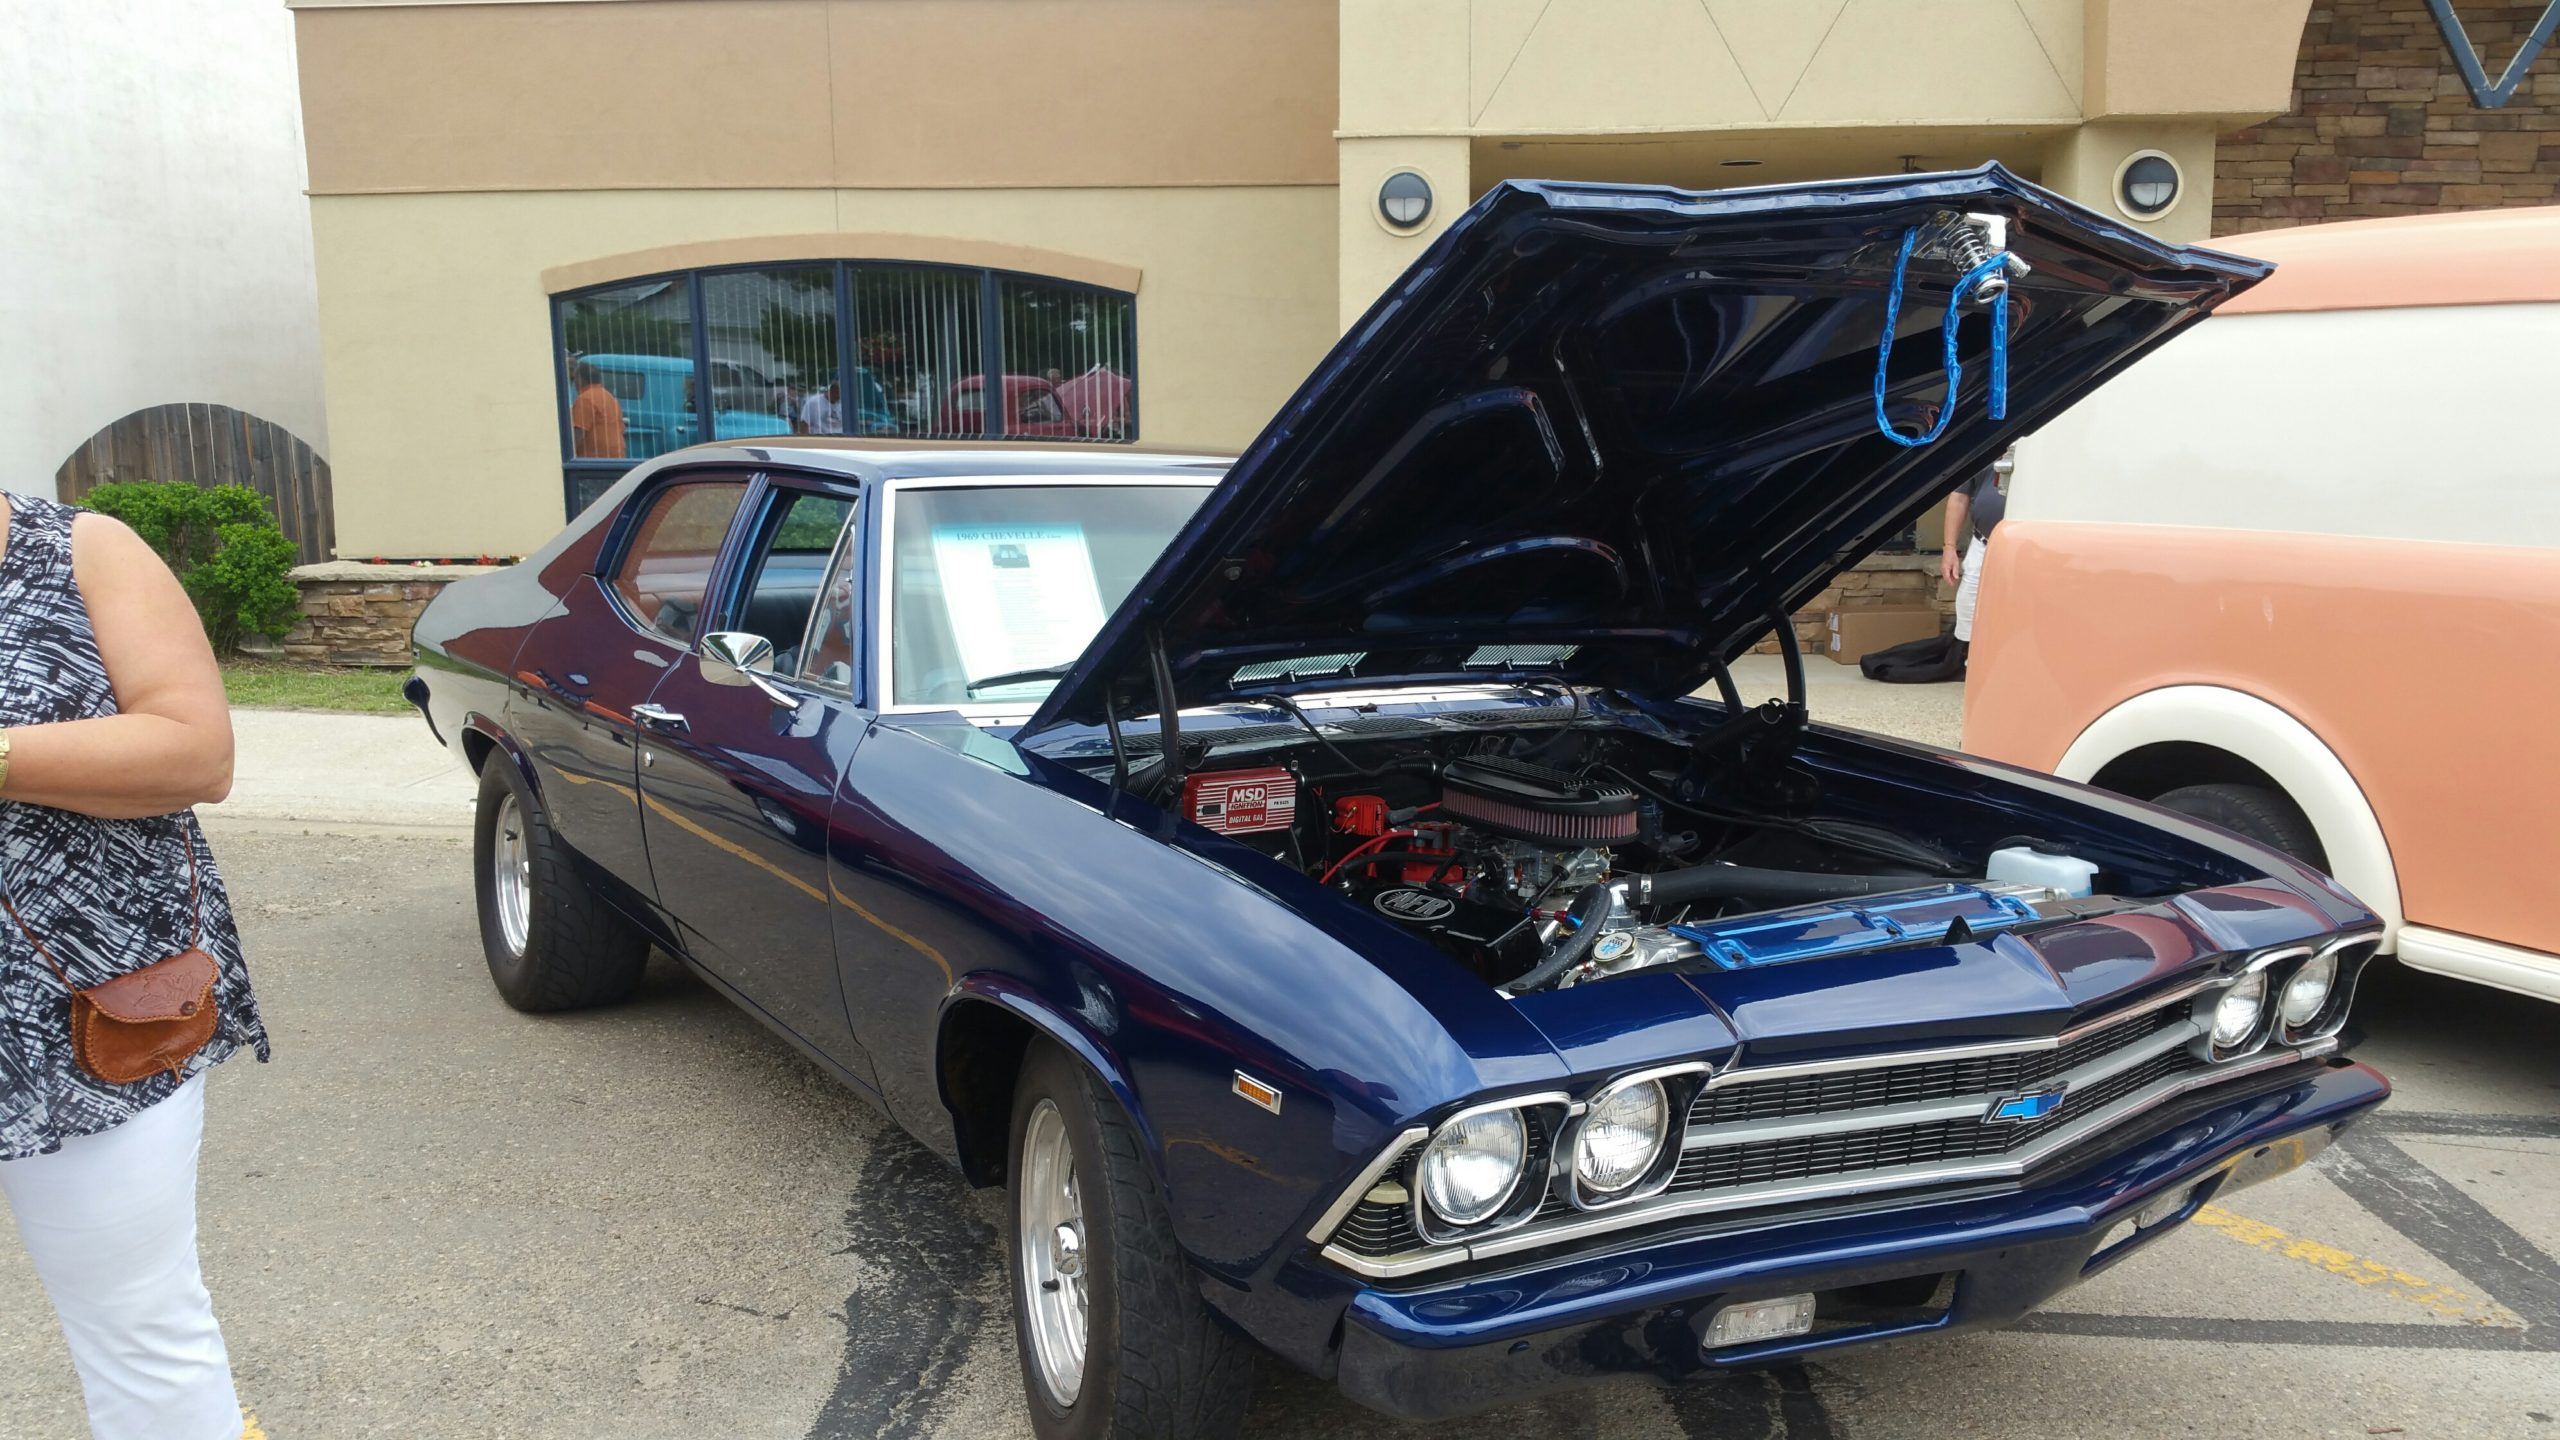 Photo of a 1969 Chevelle at a car sale, after Alexander Konowalchuk completely restored the vehicle.